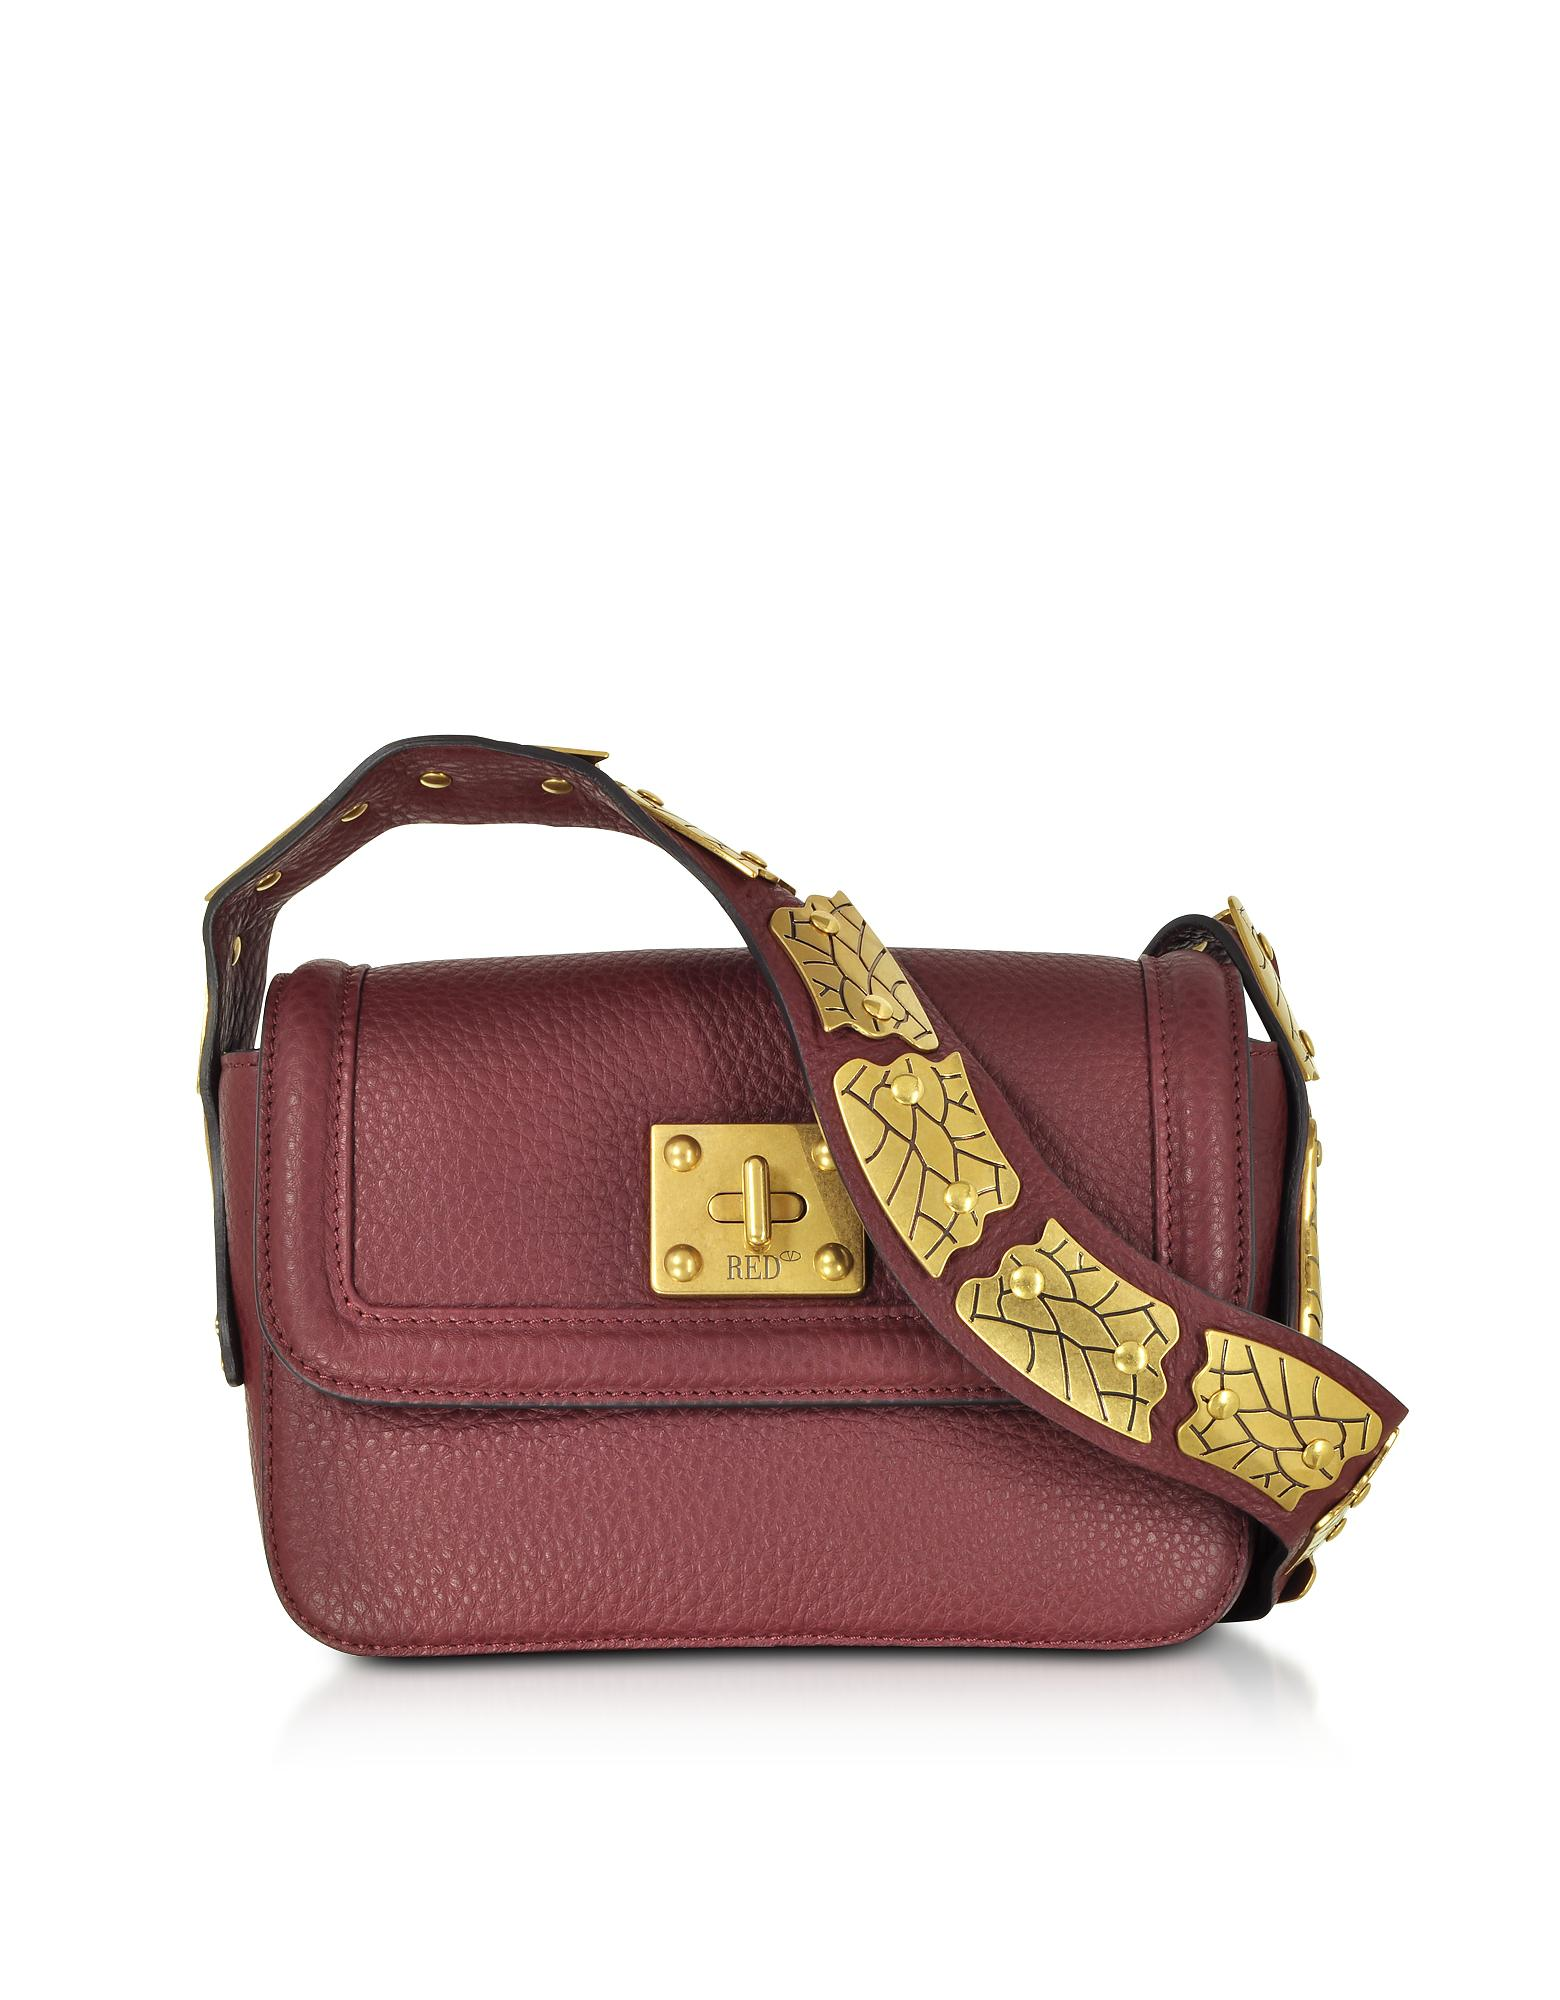 91ddca51aa9 Red Valentino Wine Pebble Leather Crossbody Bag in Red - Lyst